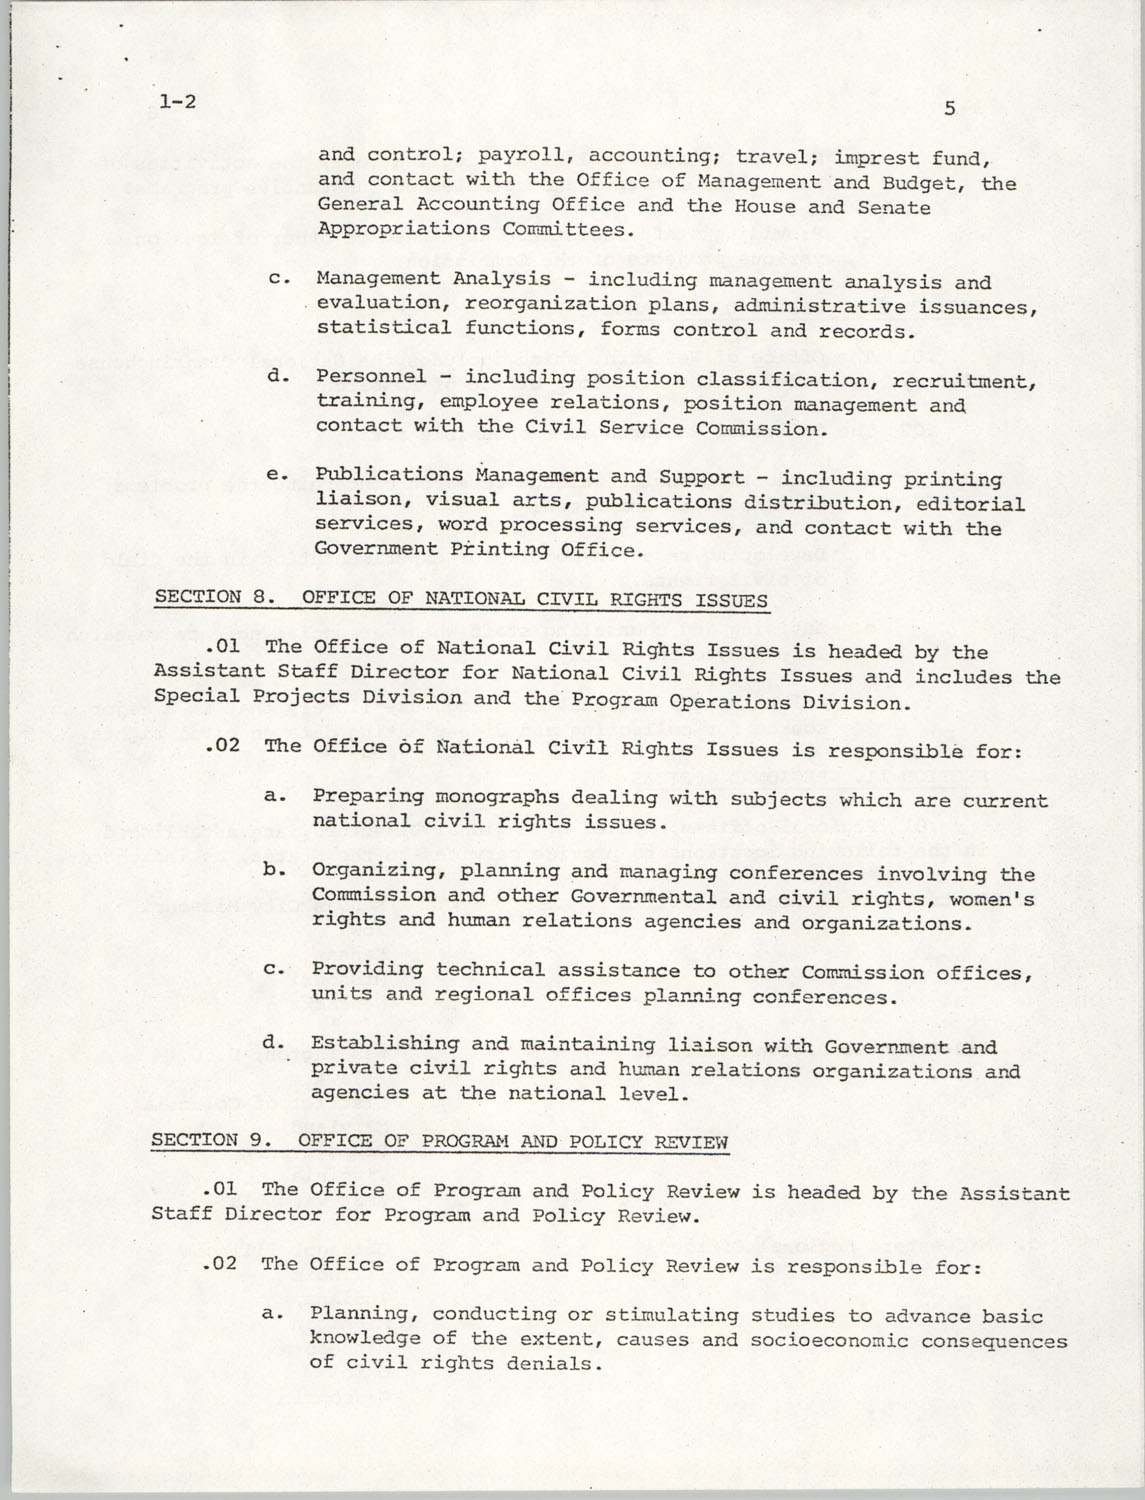 Administrative Manual Instruction 1-2, Organization of the U.S. Commission on Civil Rights, Page 5